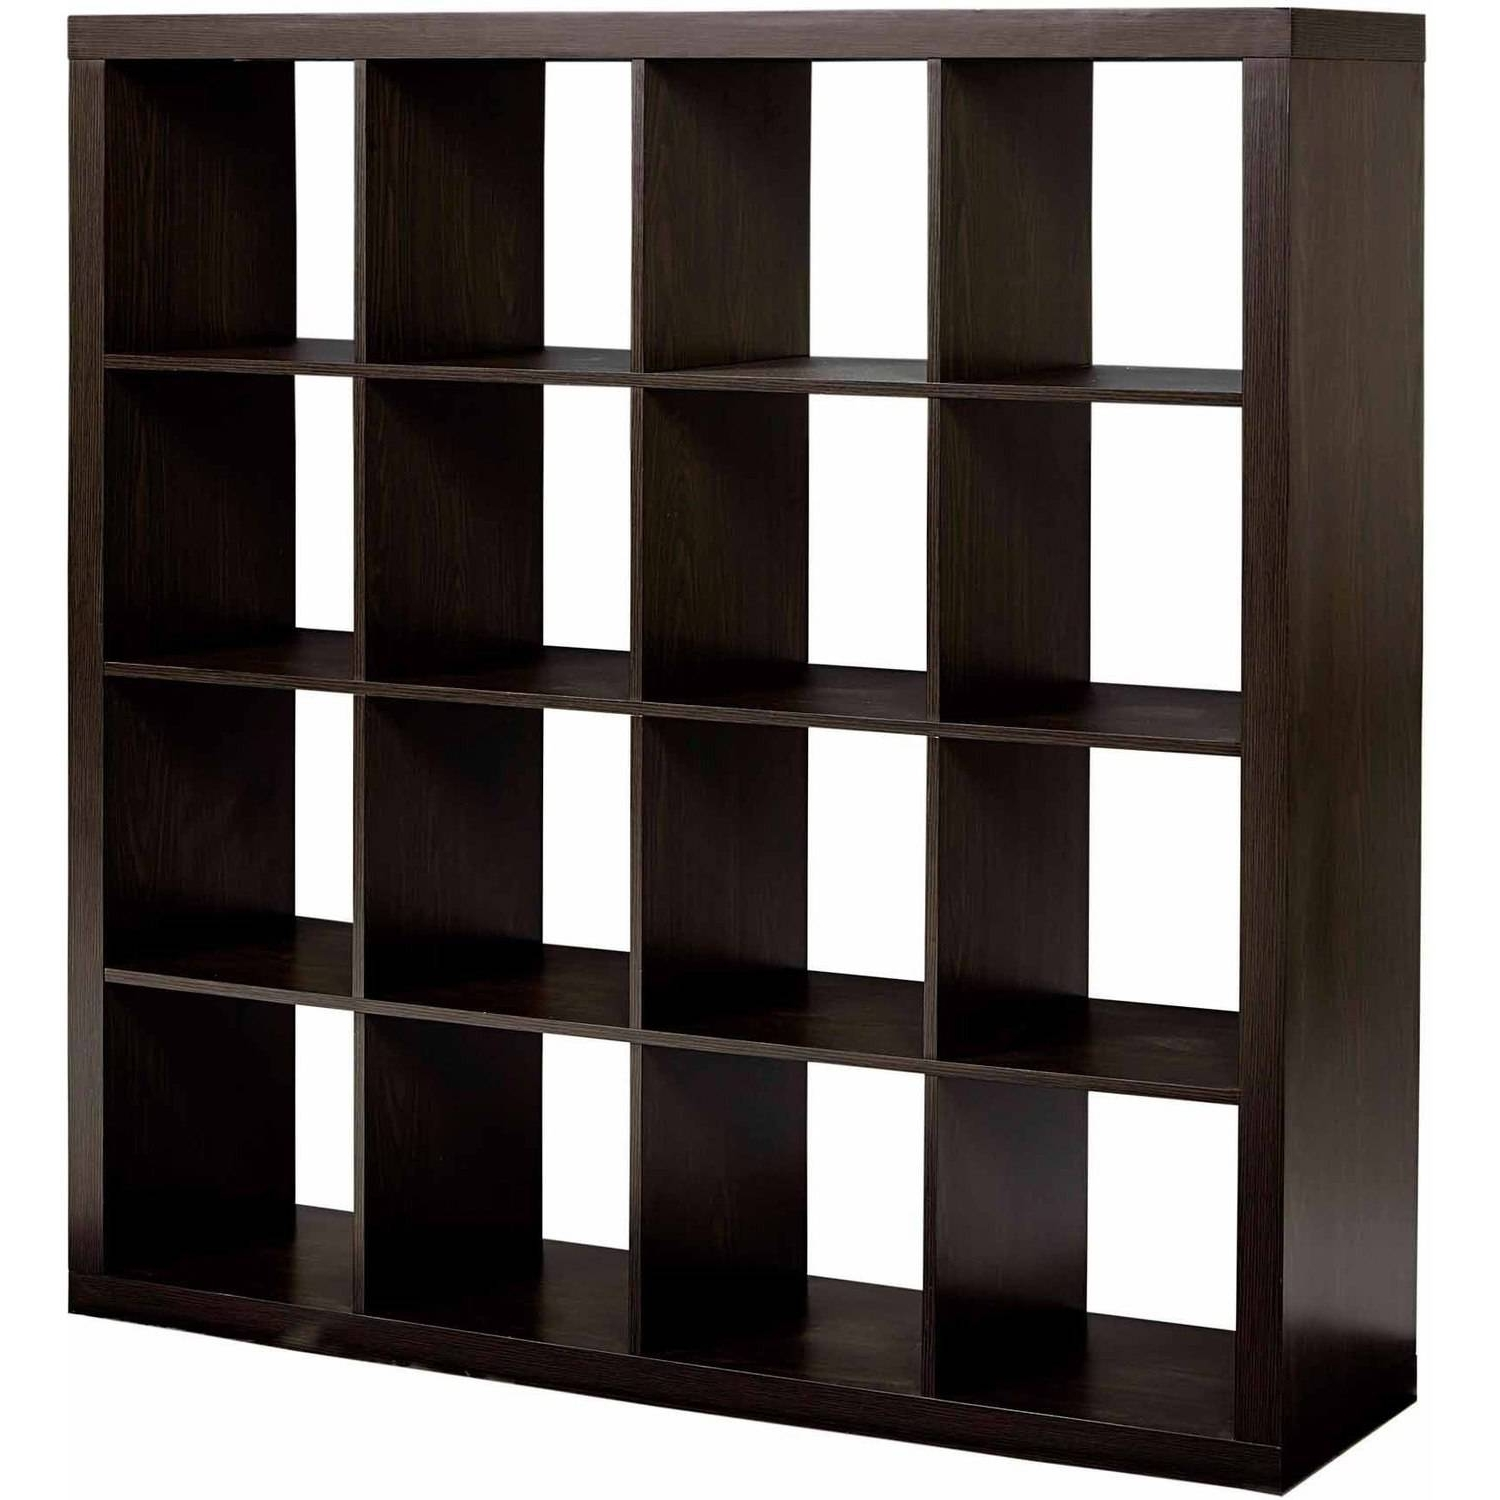 Better Homes And Gardens 16 Cube Organizer, Multiple Colors For Most Popular Cubby Bookcases (View 12 of 15)